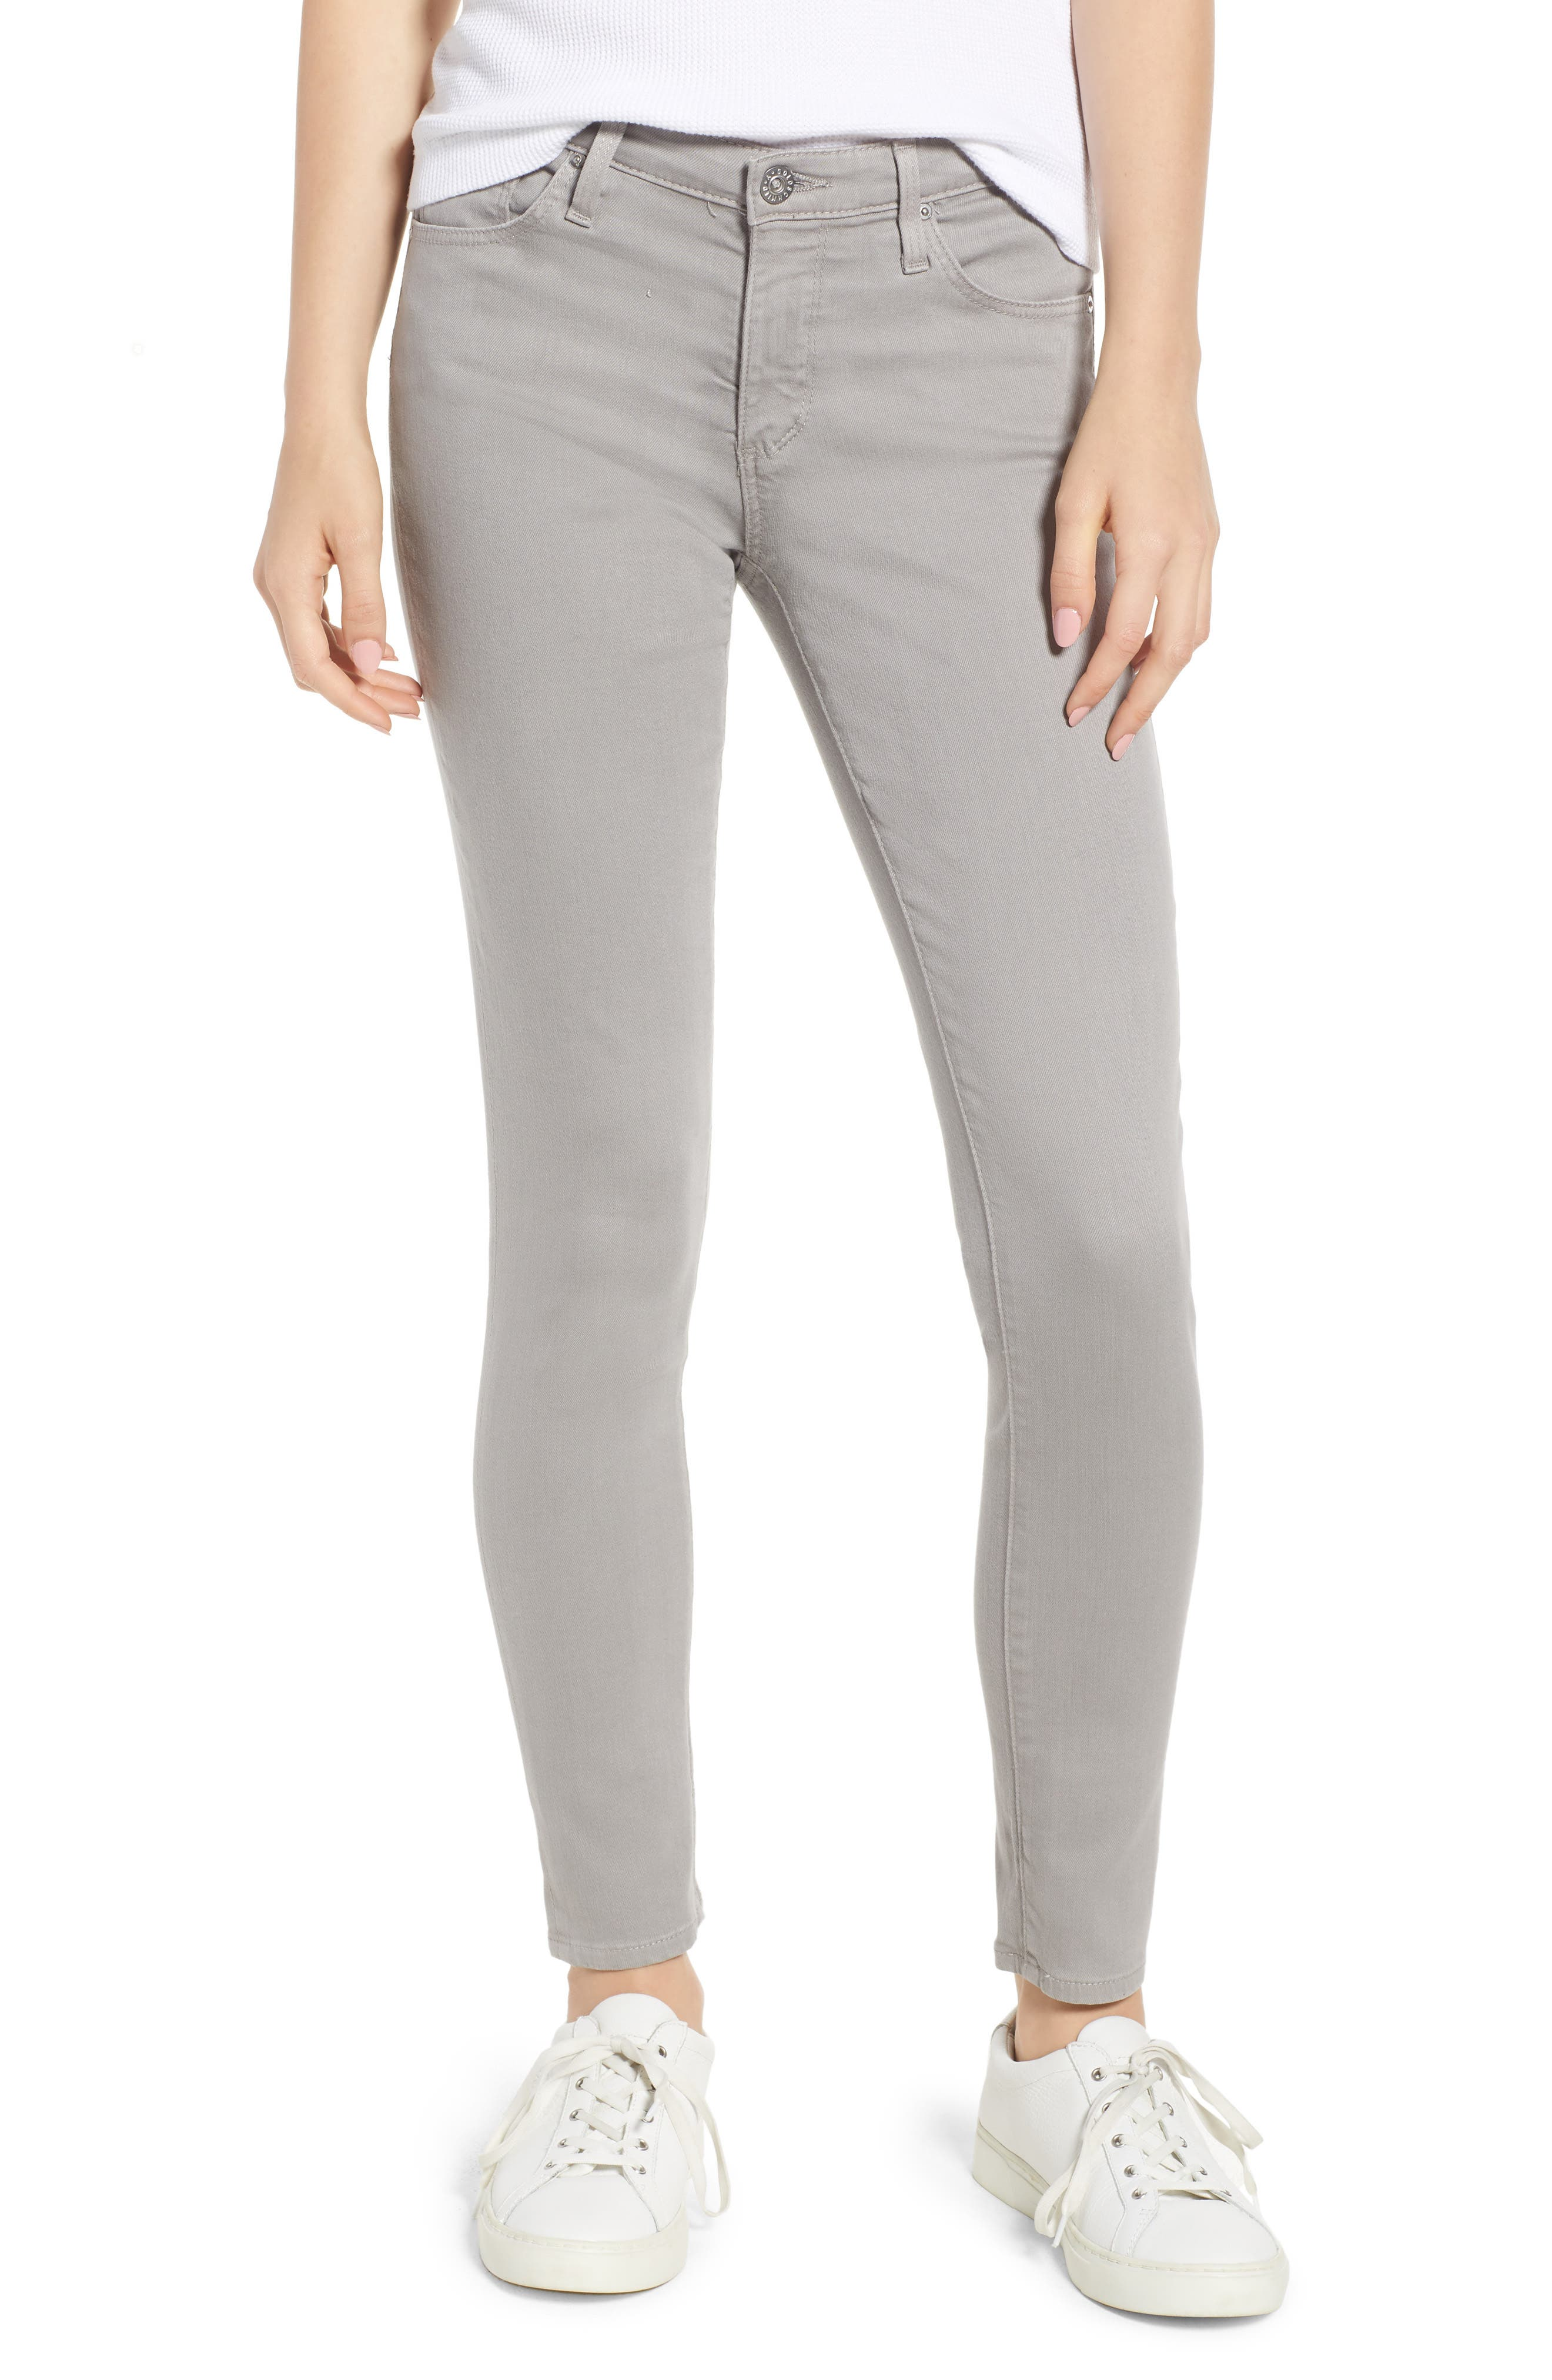 'The Legging' Ankle Jeans,                             Main thumbnail 1, color,                             023